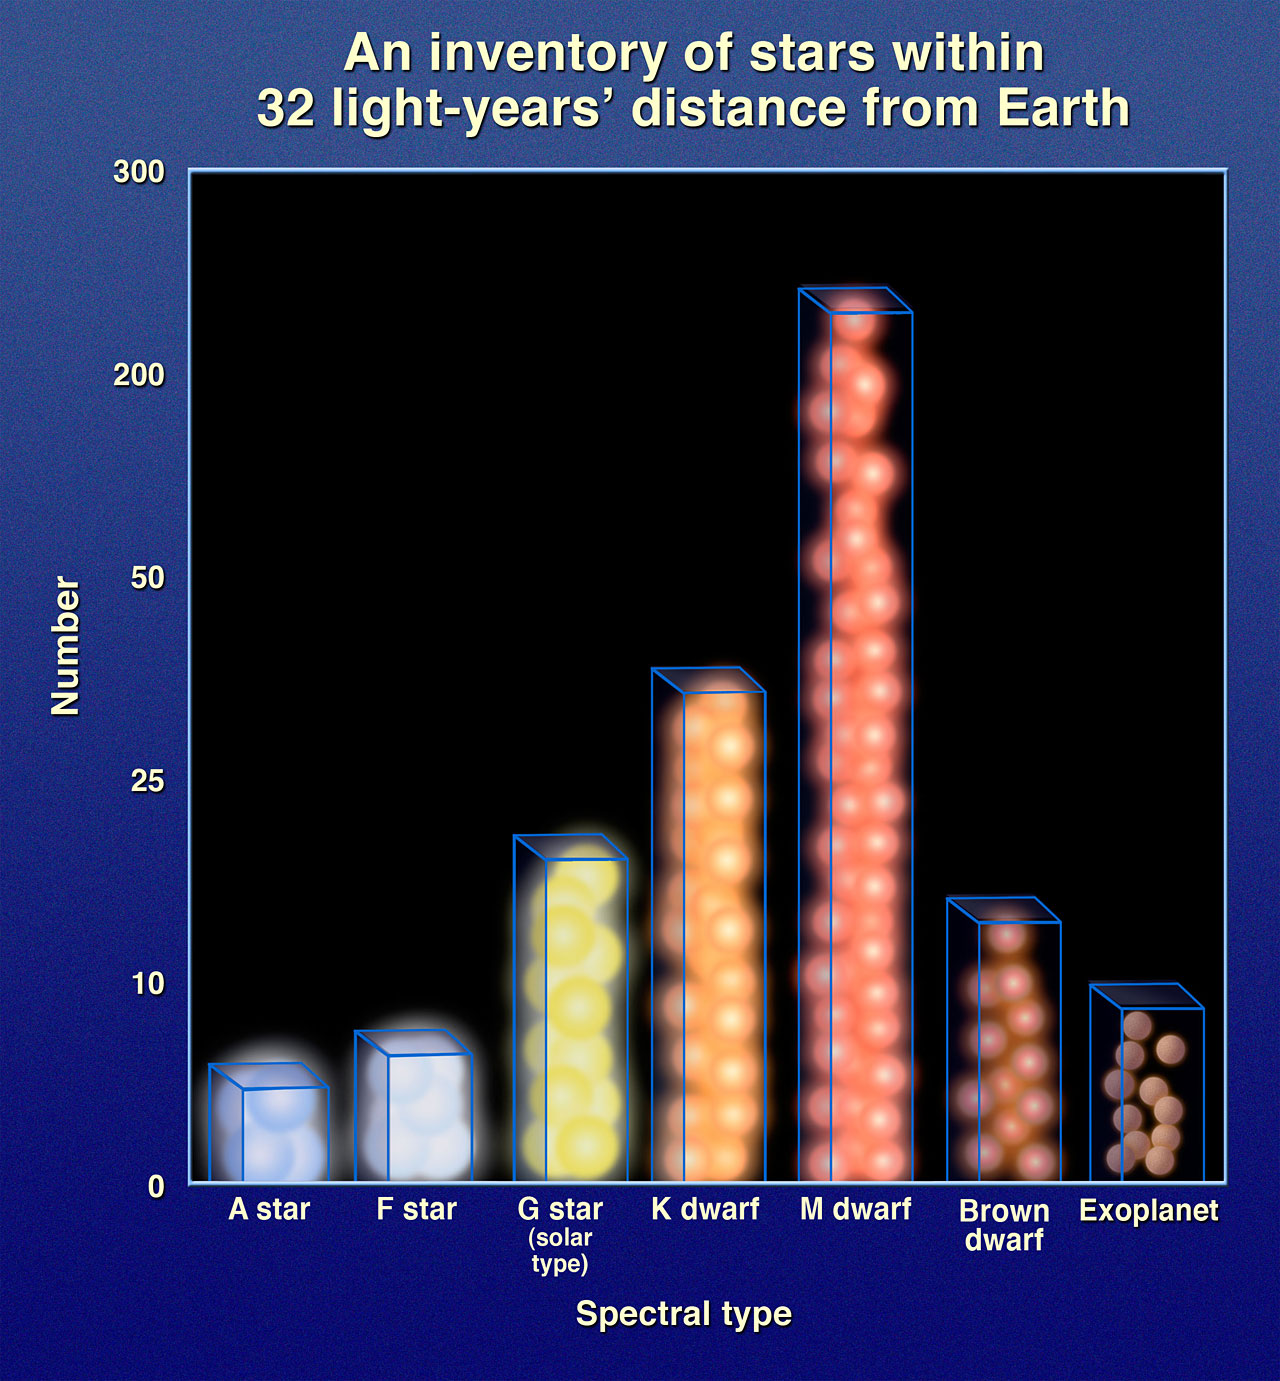 Graphic of number of stars vs. spectral type within 32 light-years of Earth